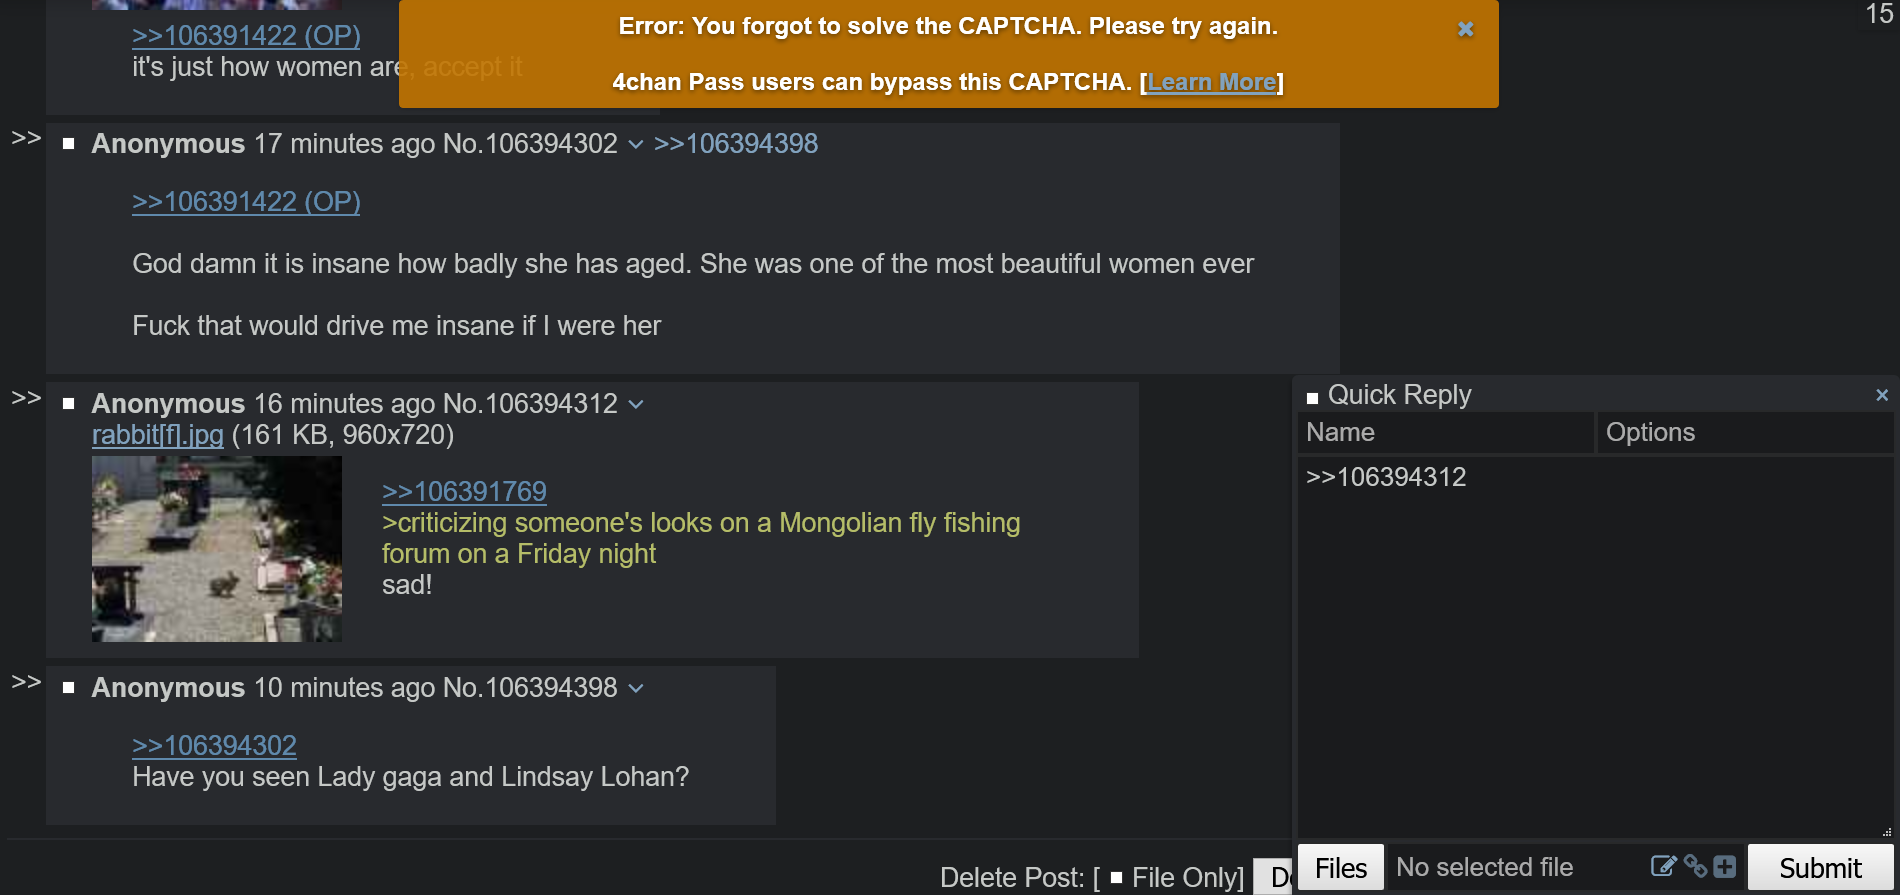 4chan Pass doesn't work in 4channel but works in 4chan